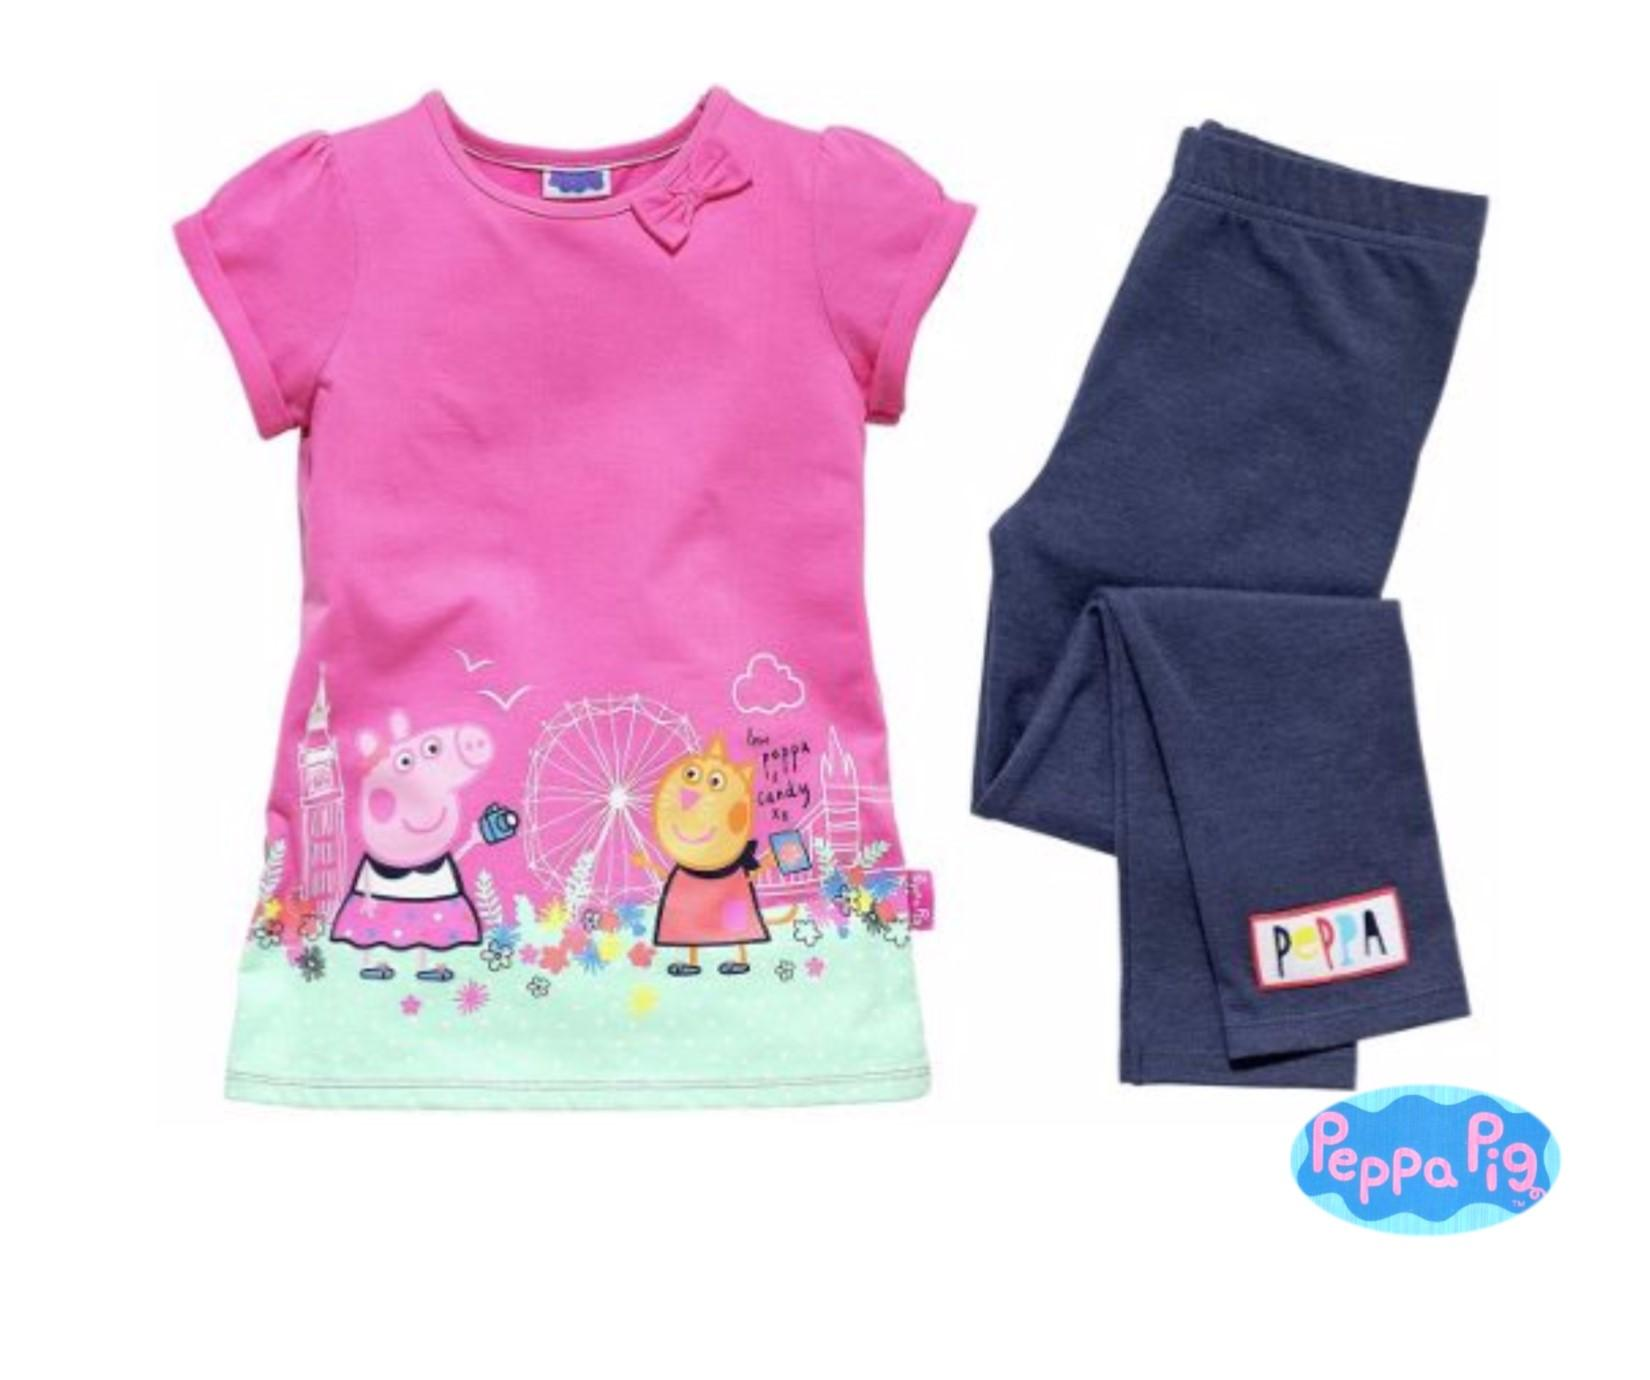 62ef17d9d909 Peppa Pig Philippines: Peppa Pig price list - Toys & Doll Set for ...